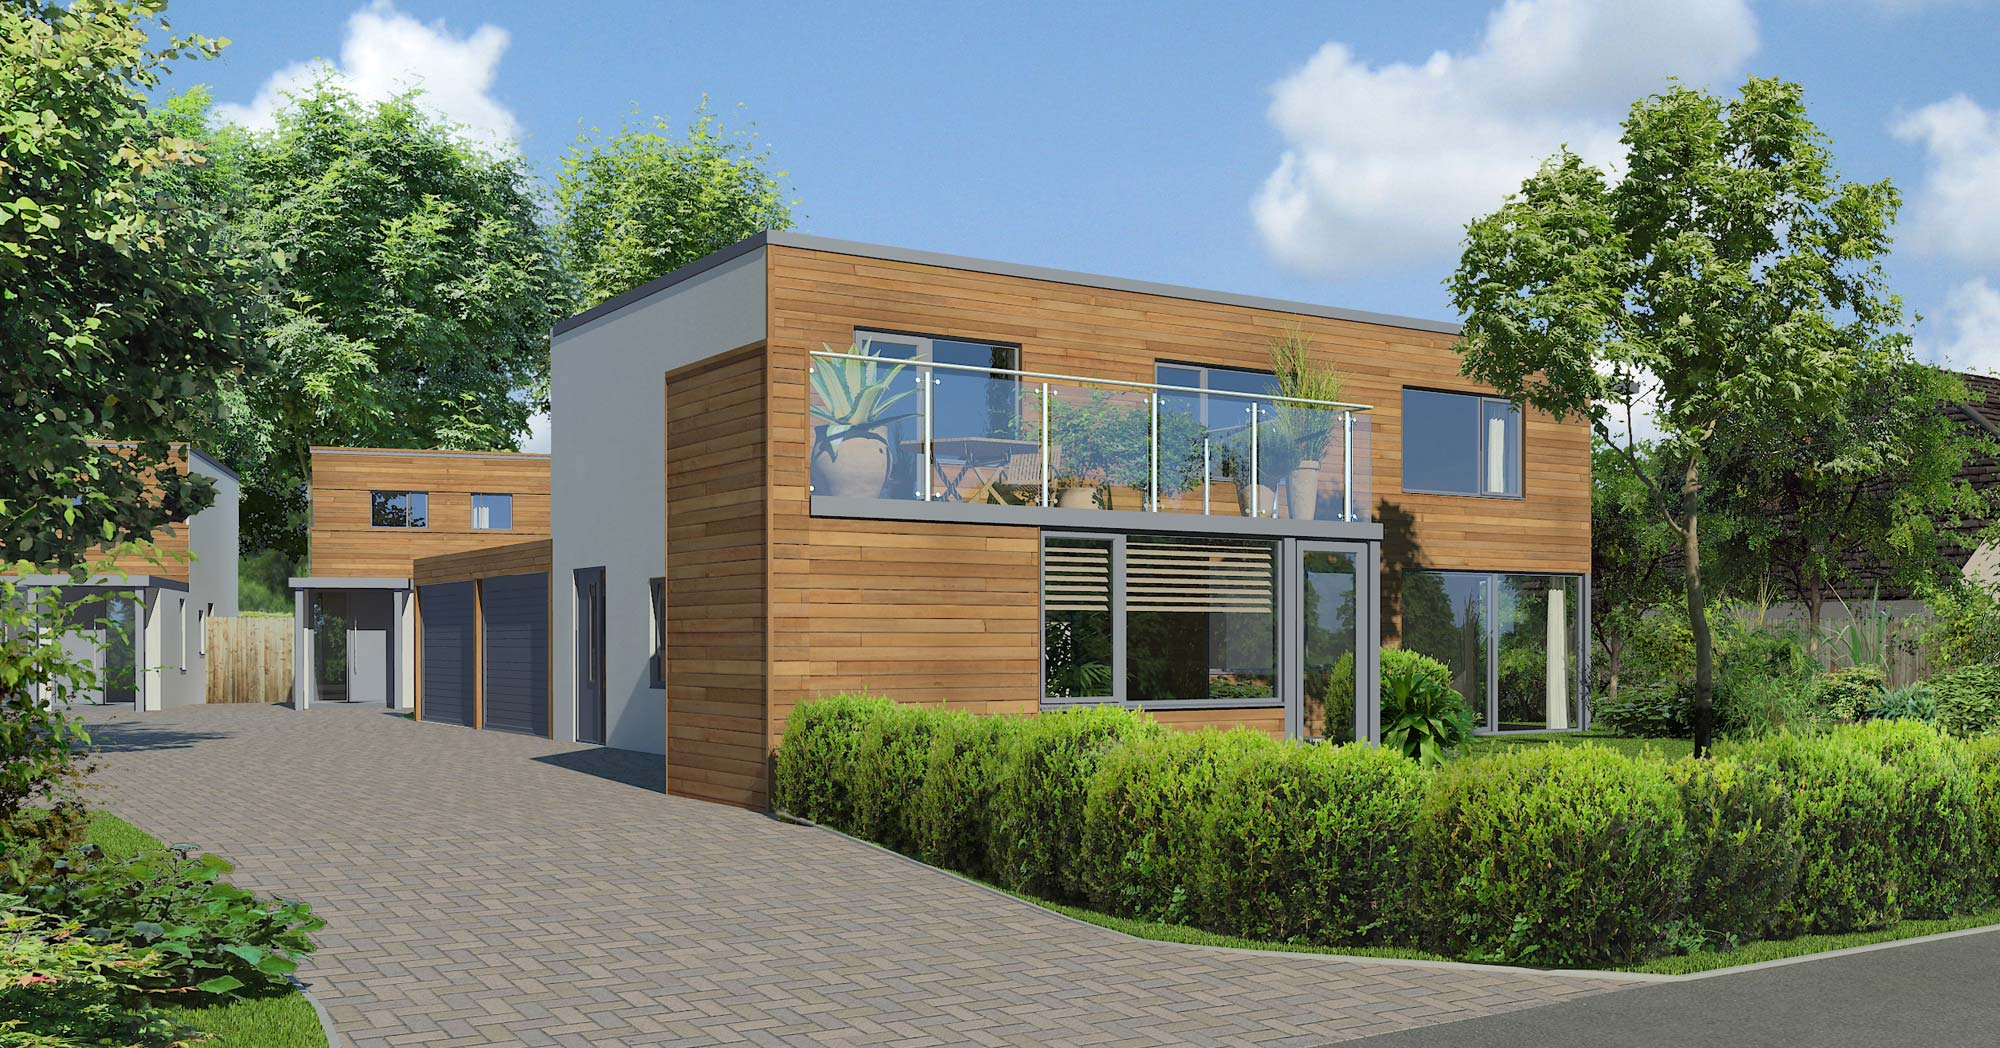 Sustainables homes constructed in Great Yeldham Essex & Greenstead Ltd - Home to sustainable housing in Suffolk and Essex